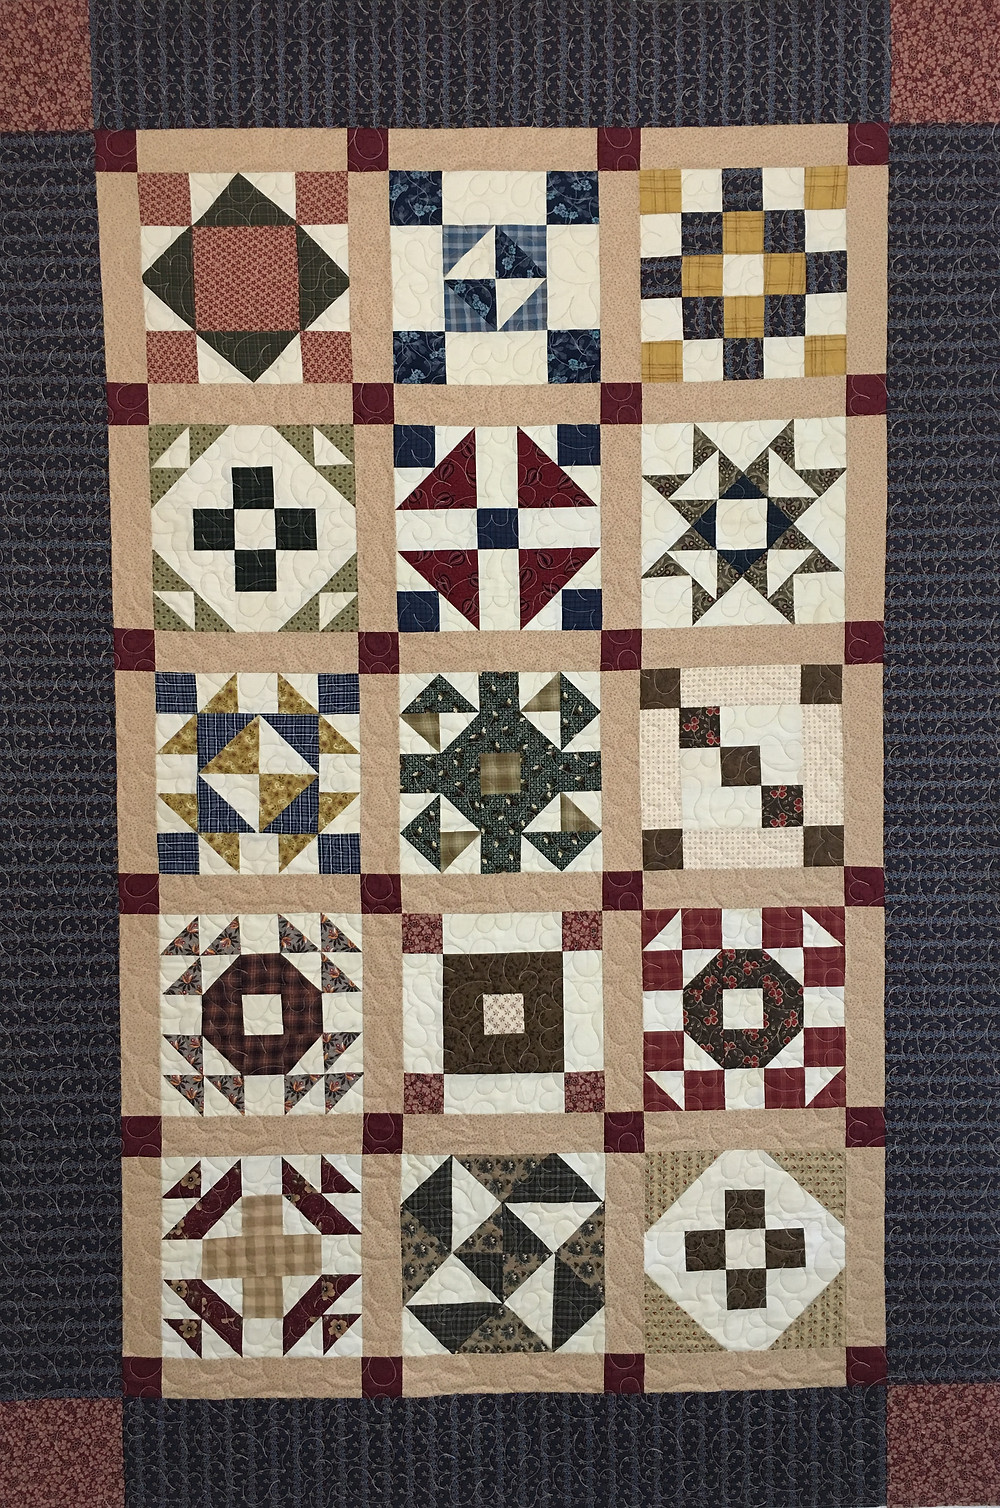 Civil War Block of the Month Quilt by Sandra Entjer